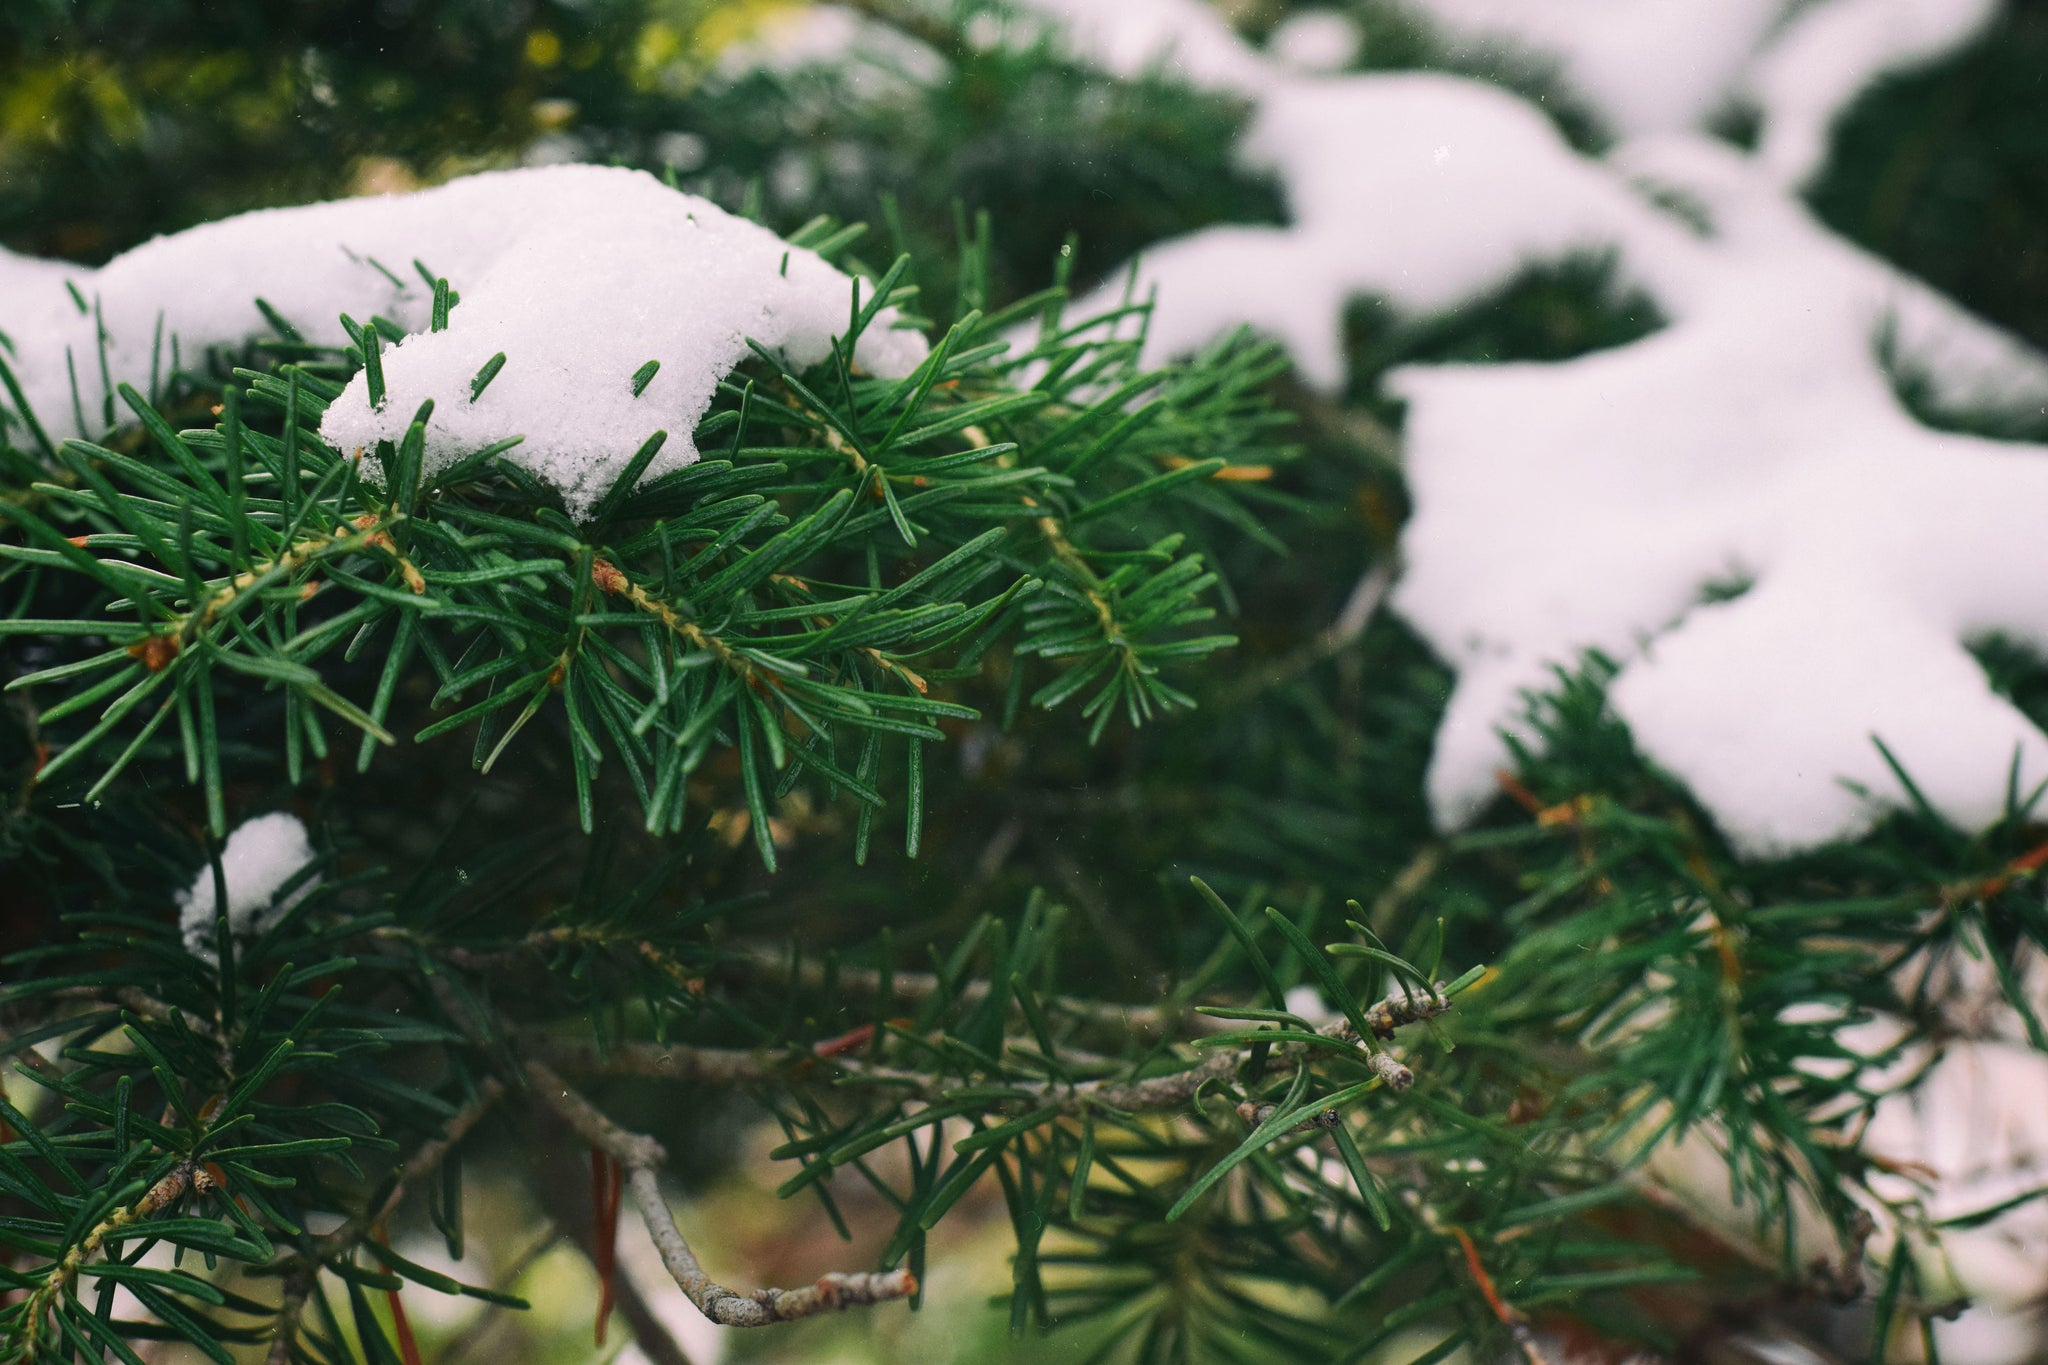 Pine Needles with snow